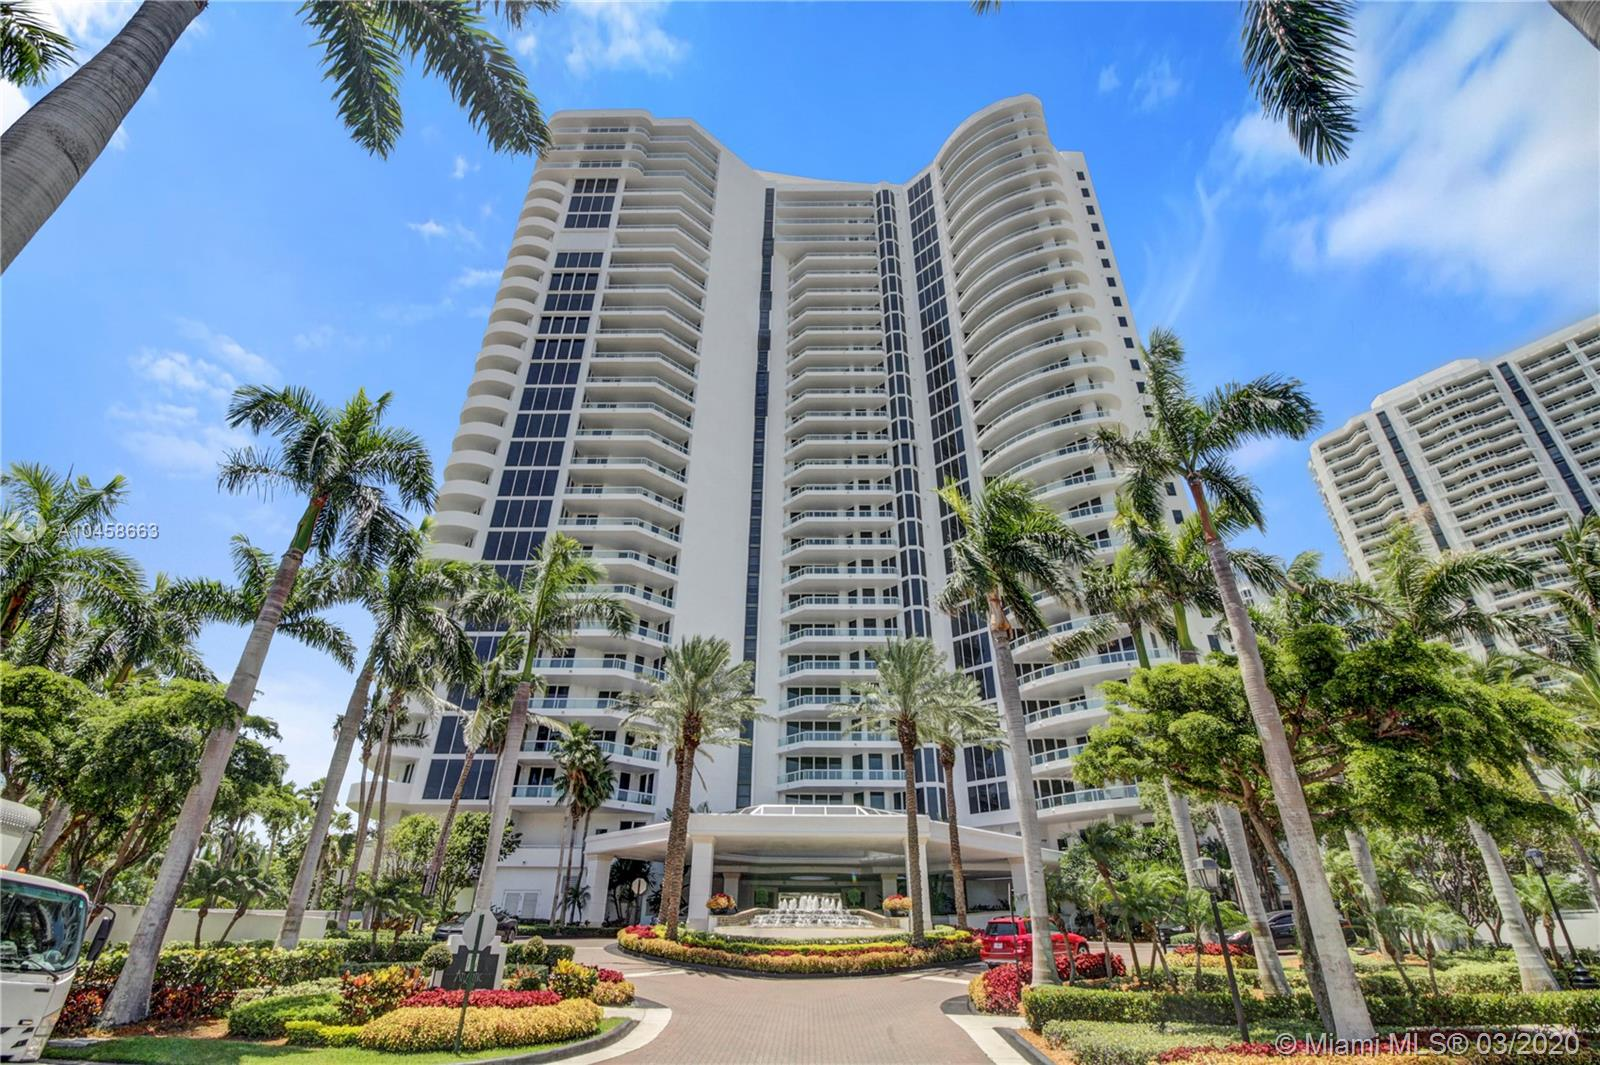 Atlantic at the Point Aventura